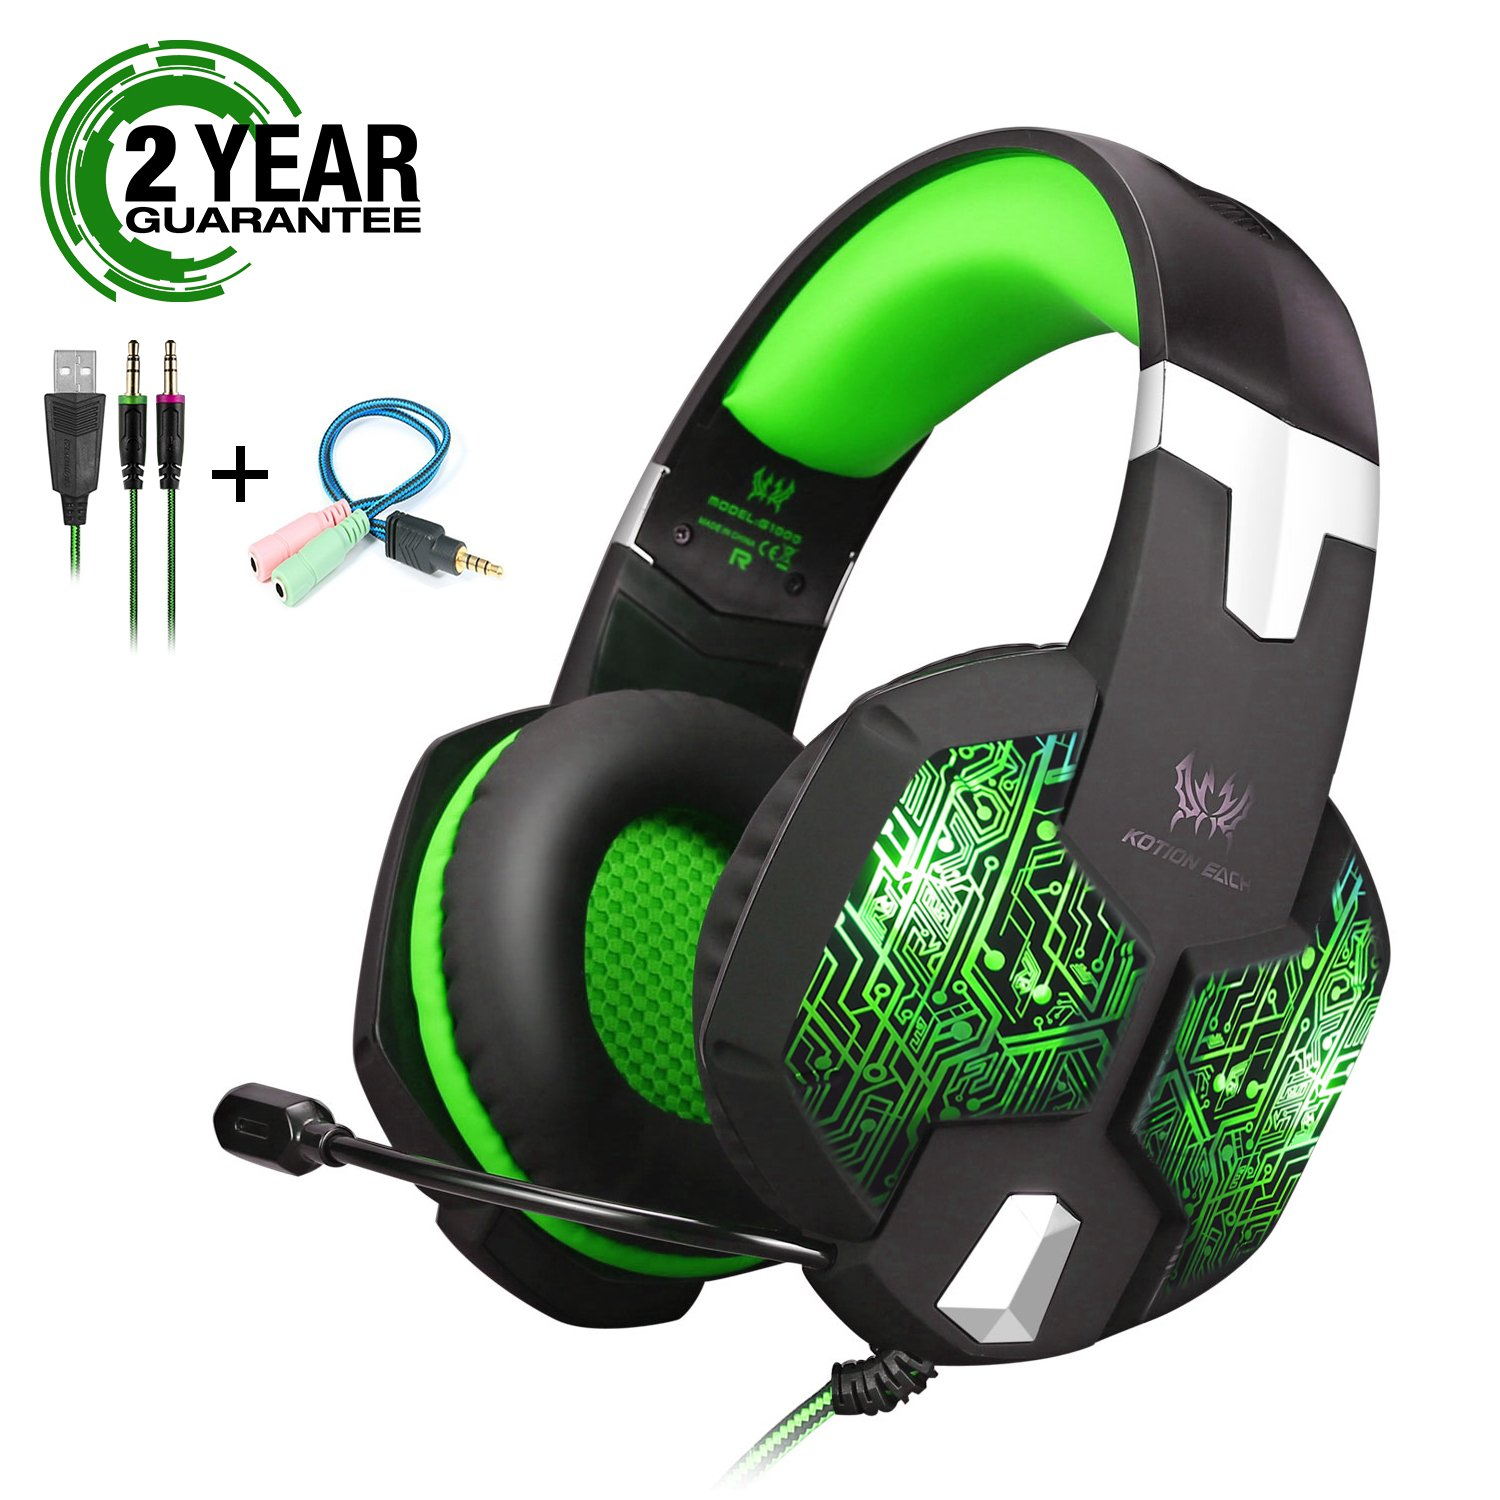 Gaming Headset with Mic and USB RGB LED Light for PS4 Xbox One PC Nintendo Switch,Lightweight Stereo Sound Over Ear Headphones,Soft Memory Earmuffs & Noise Cancelling & Volume Control (Green)